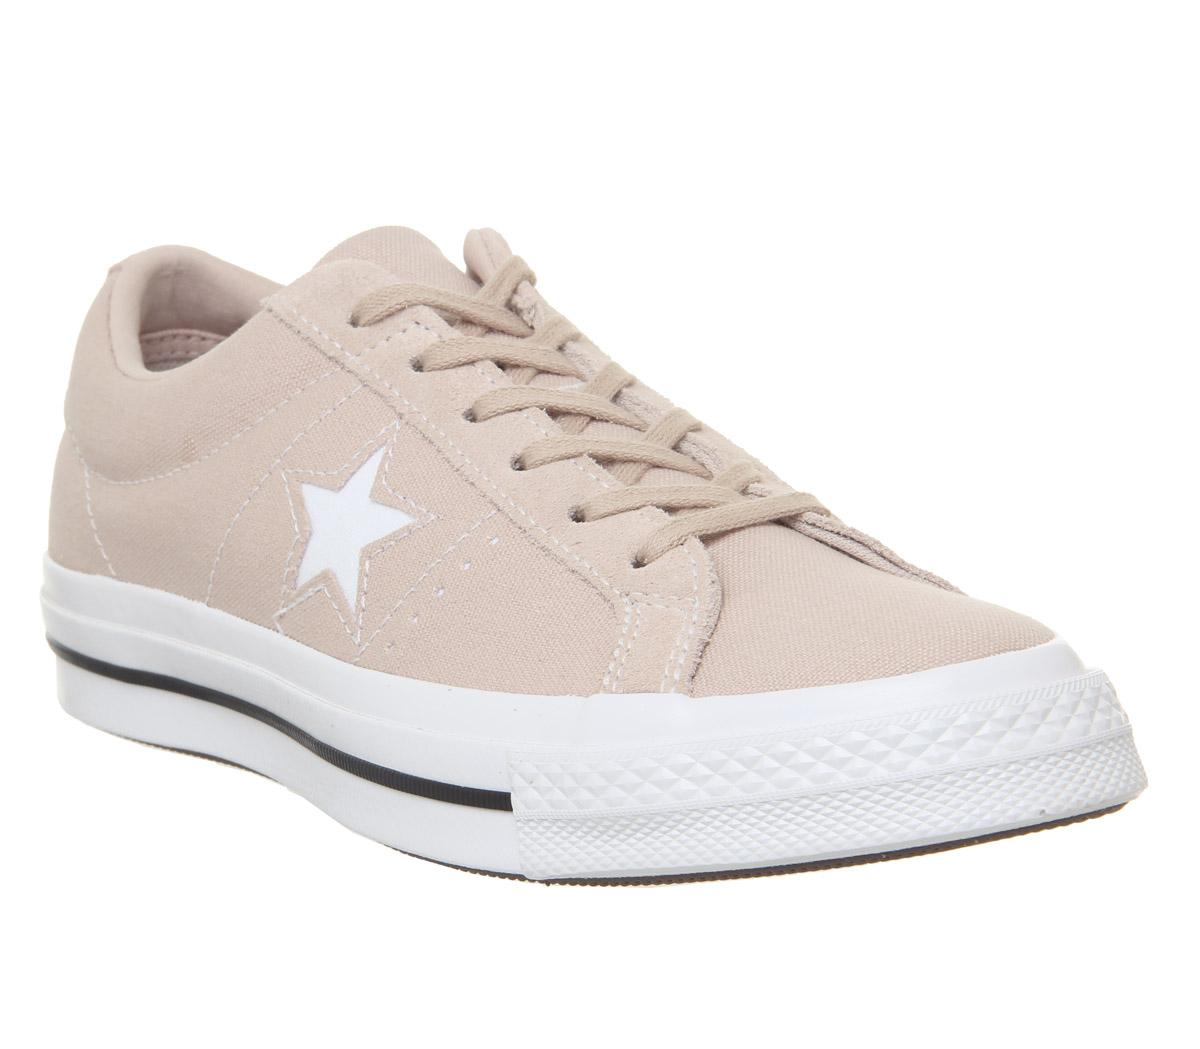 Converse One Star Trainers Particle